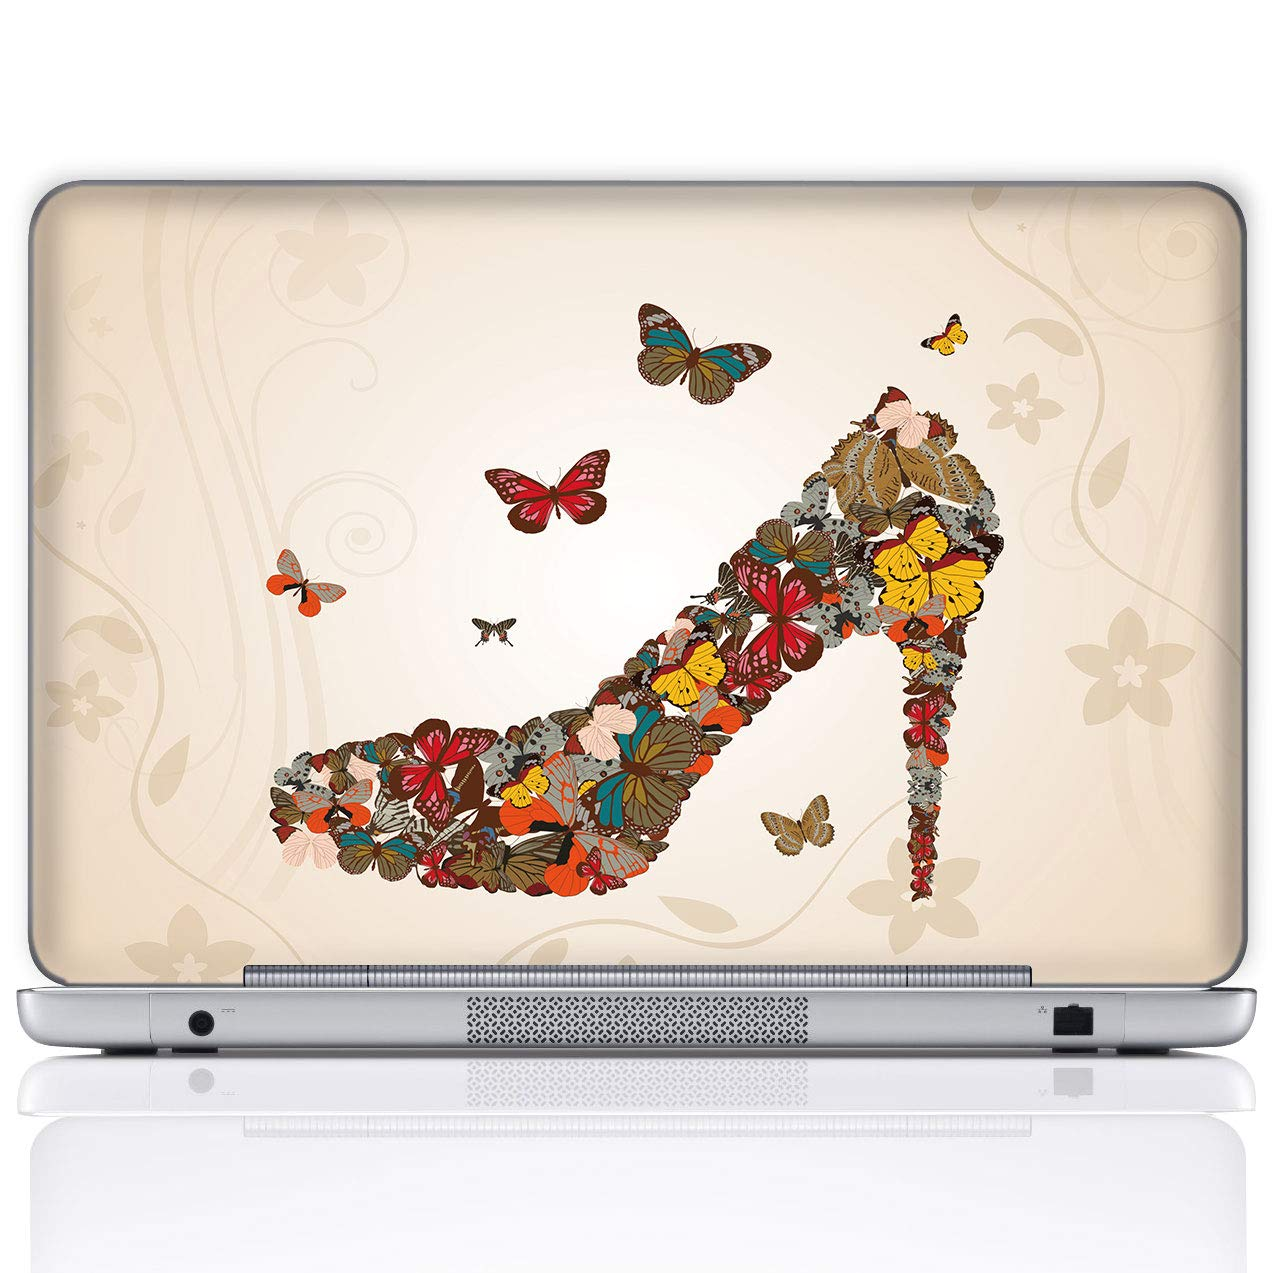 Meffort Inc 17 17.3 Inch Laptop Notebook Skin Sticker Cover Art Decal (Included 2 Wrist pad) - Butterfly High Heel